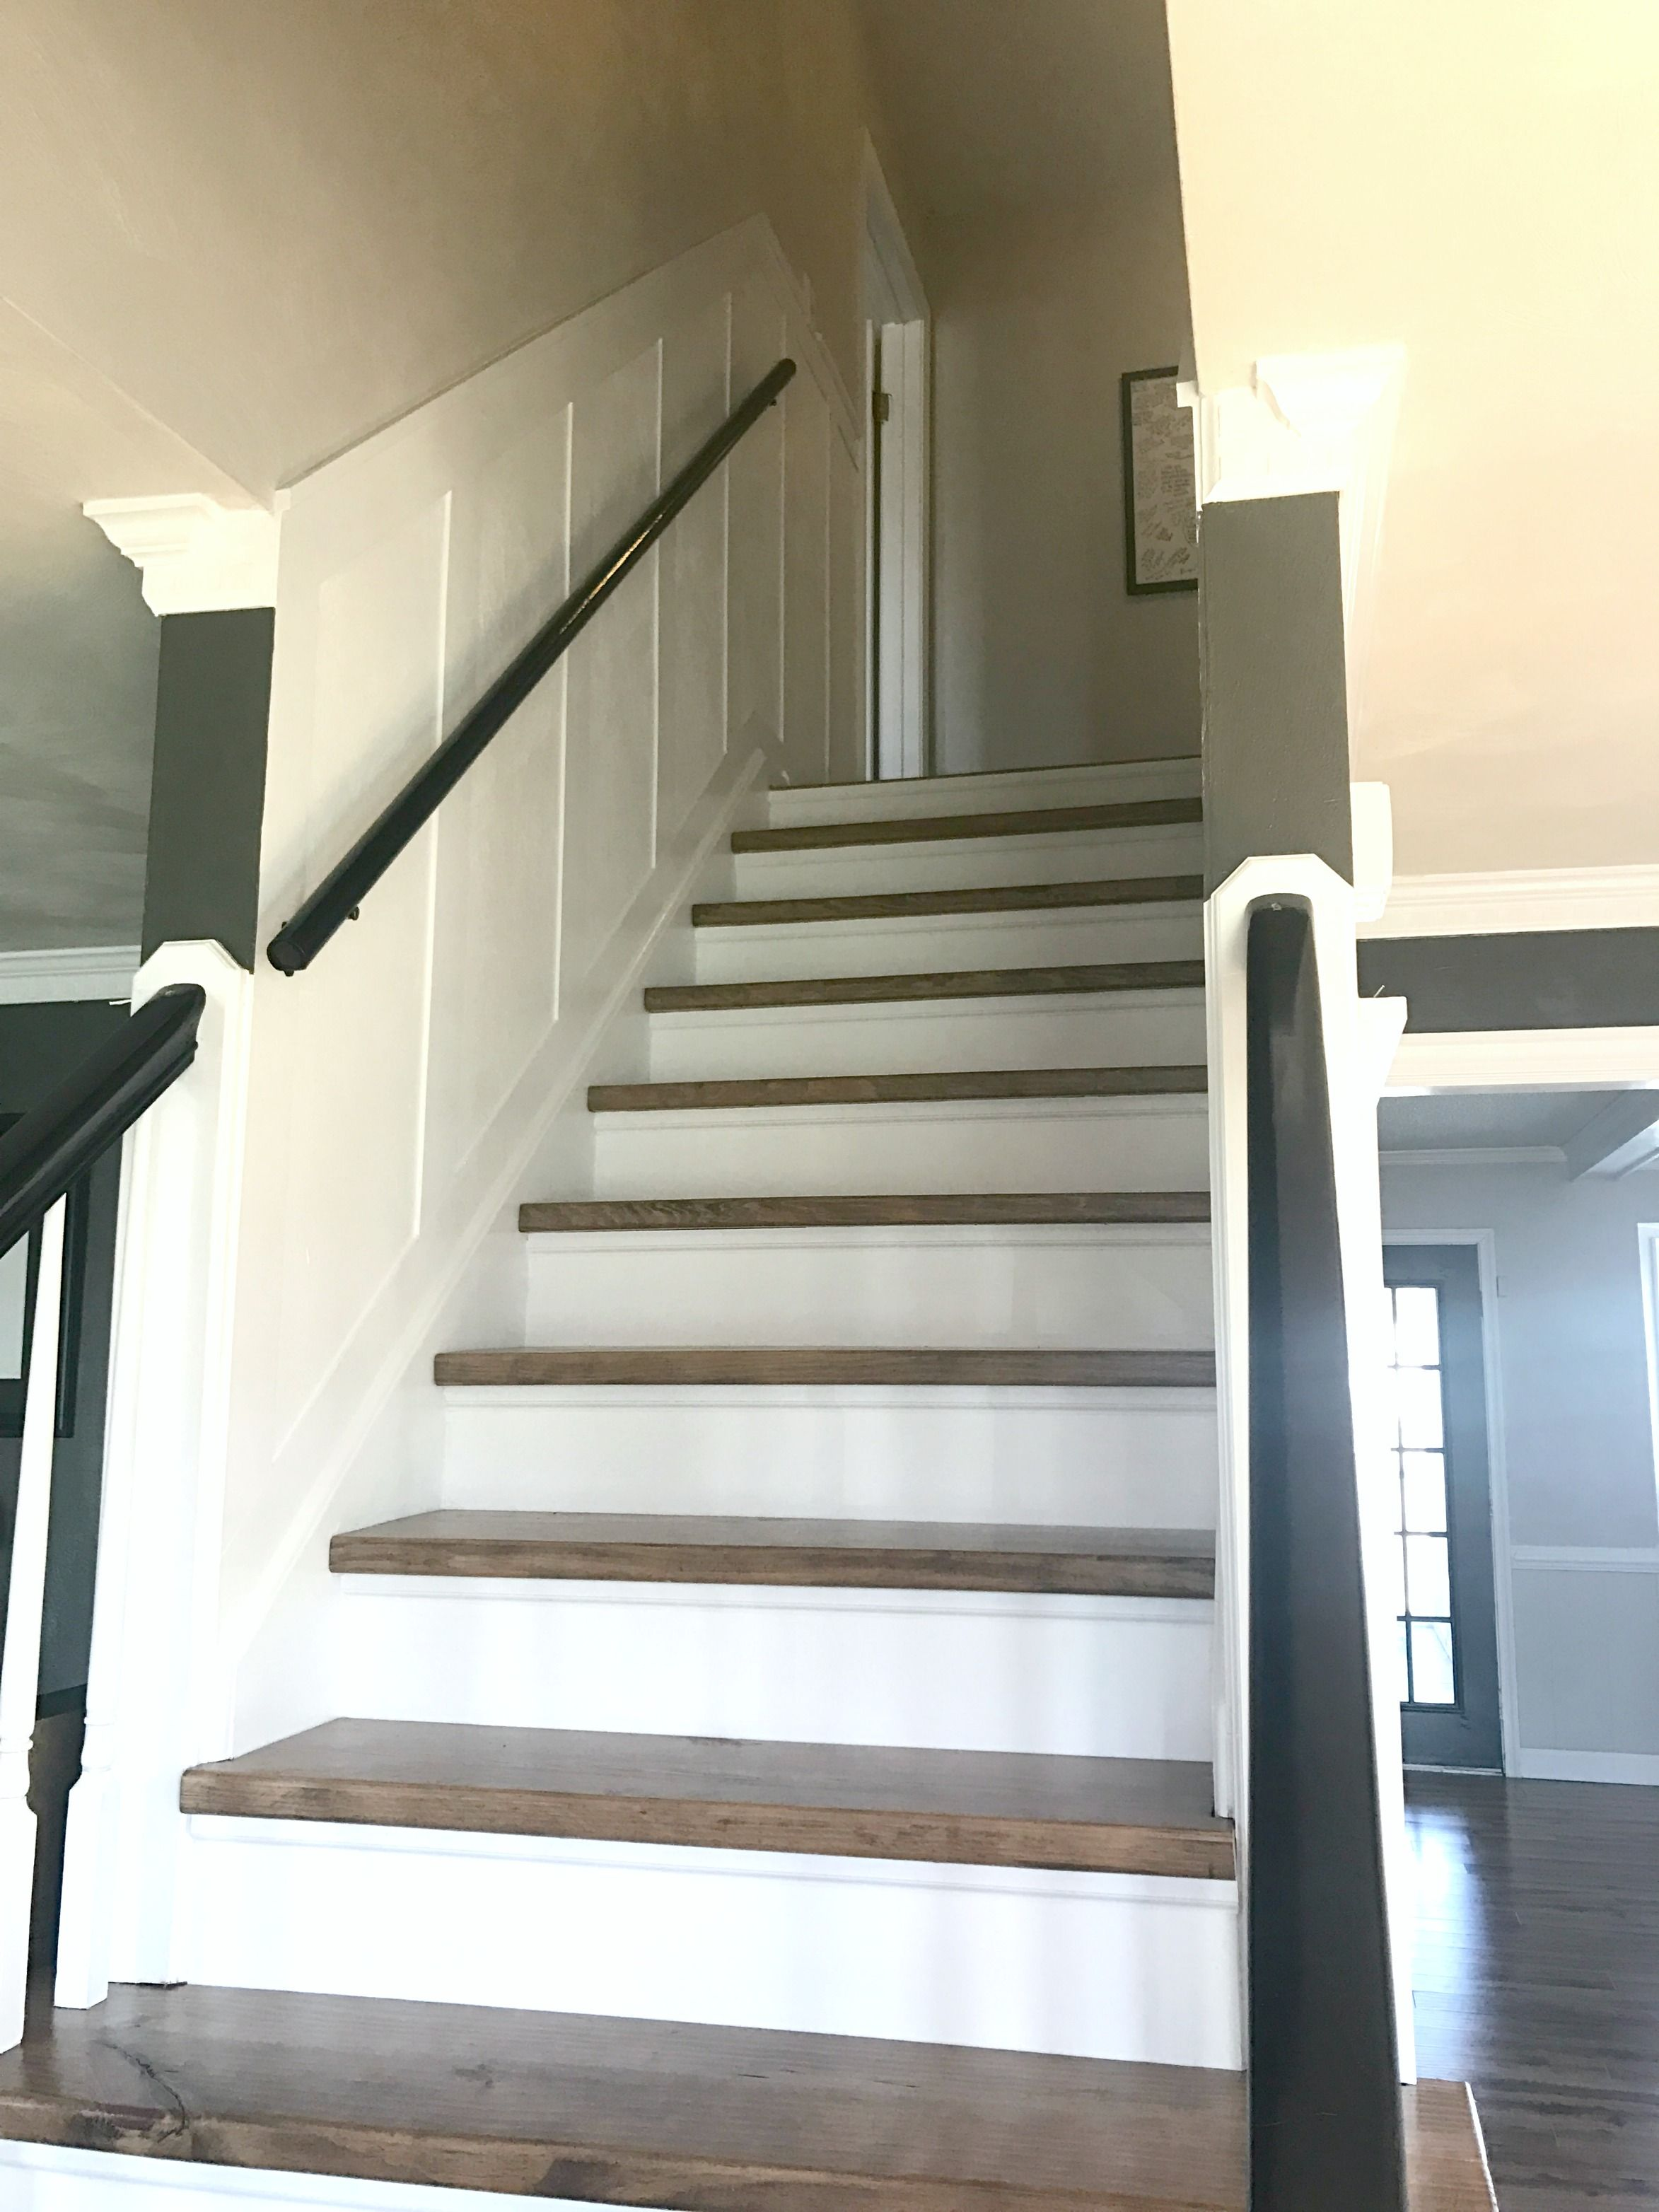 Best How To Make Wood Stairs Treads For Cheap Simply Swider 400 x 300